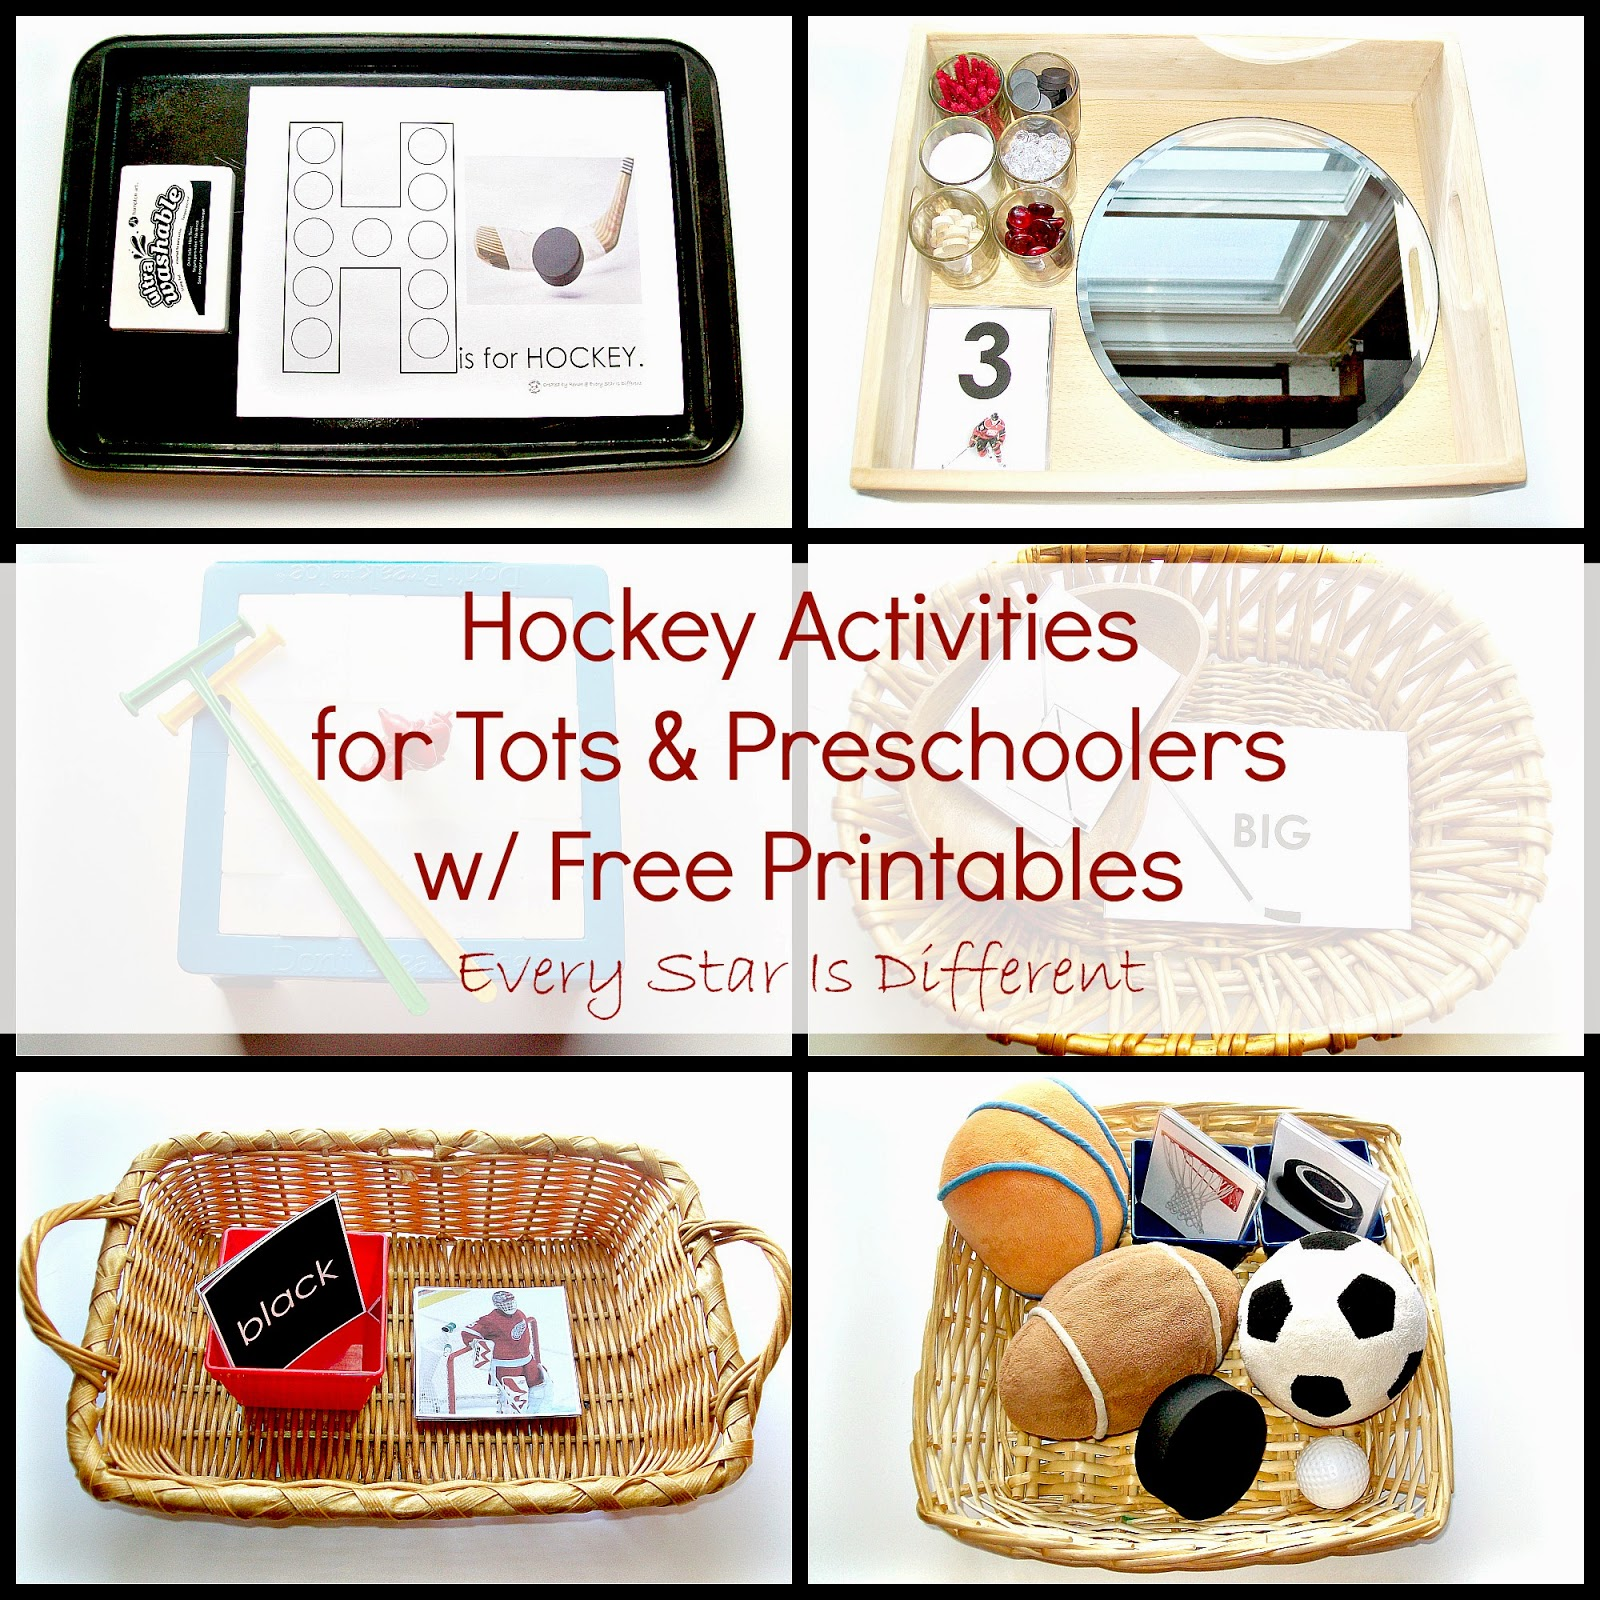 Hockey Activities for Tots and Preschoolers